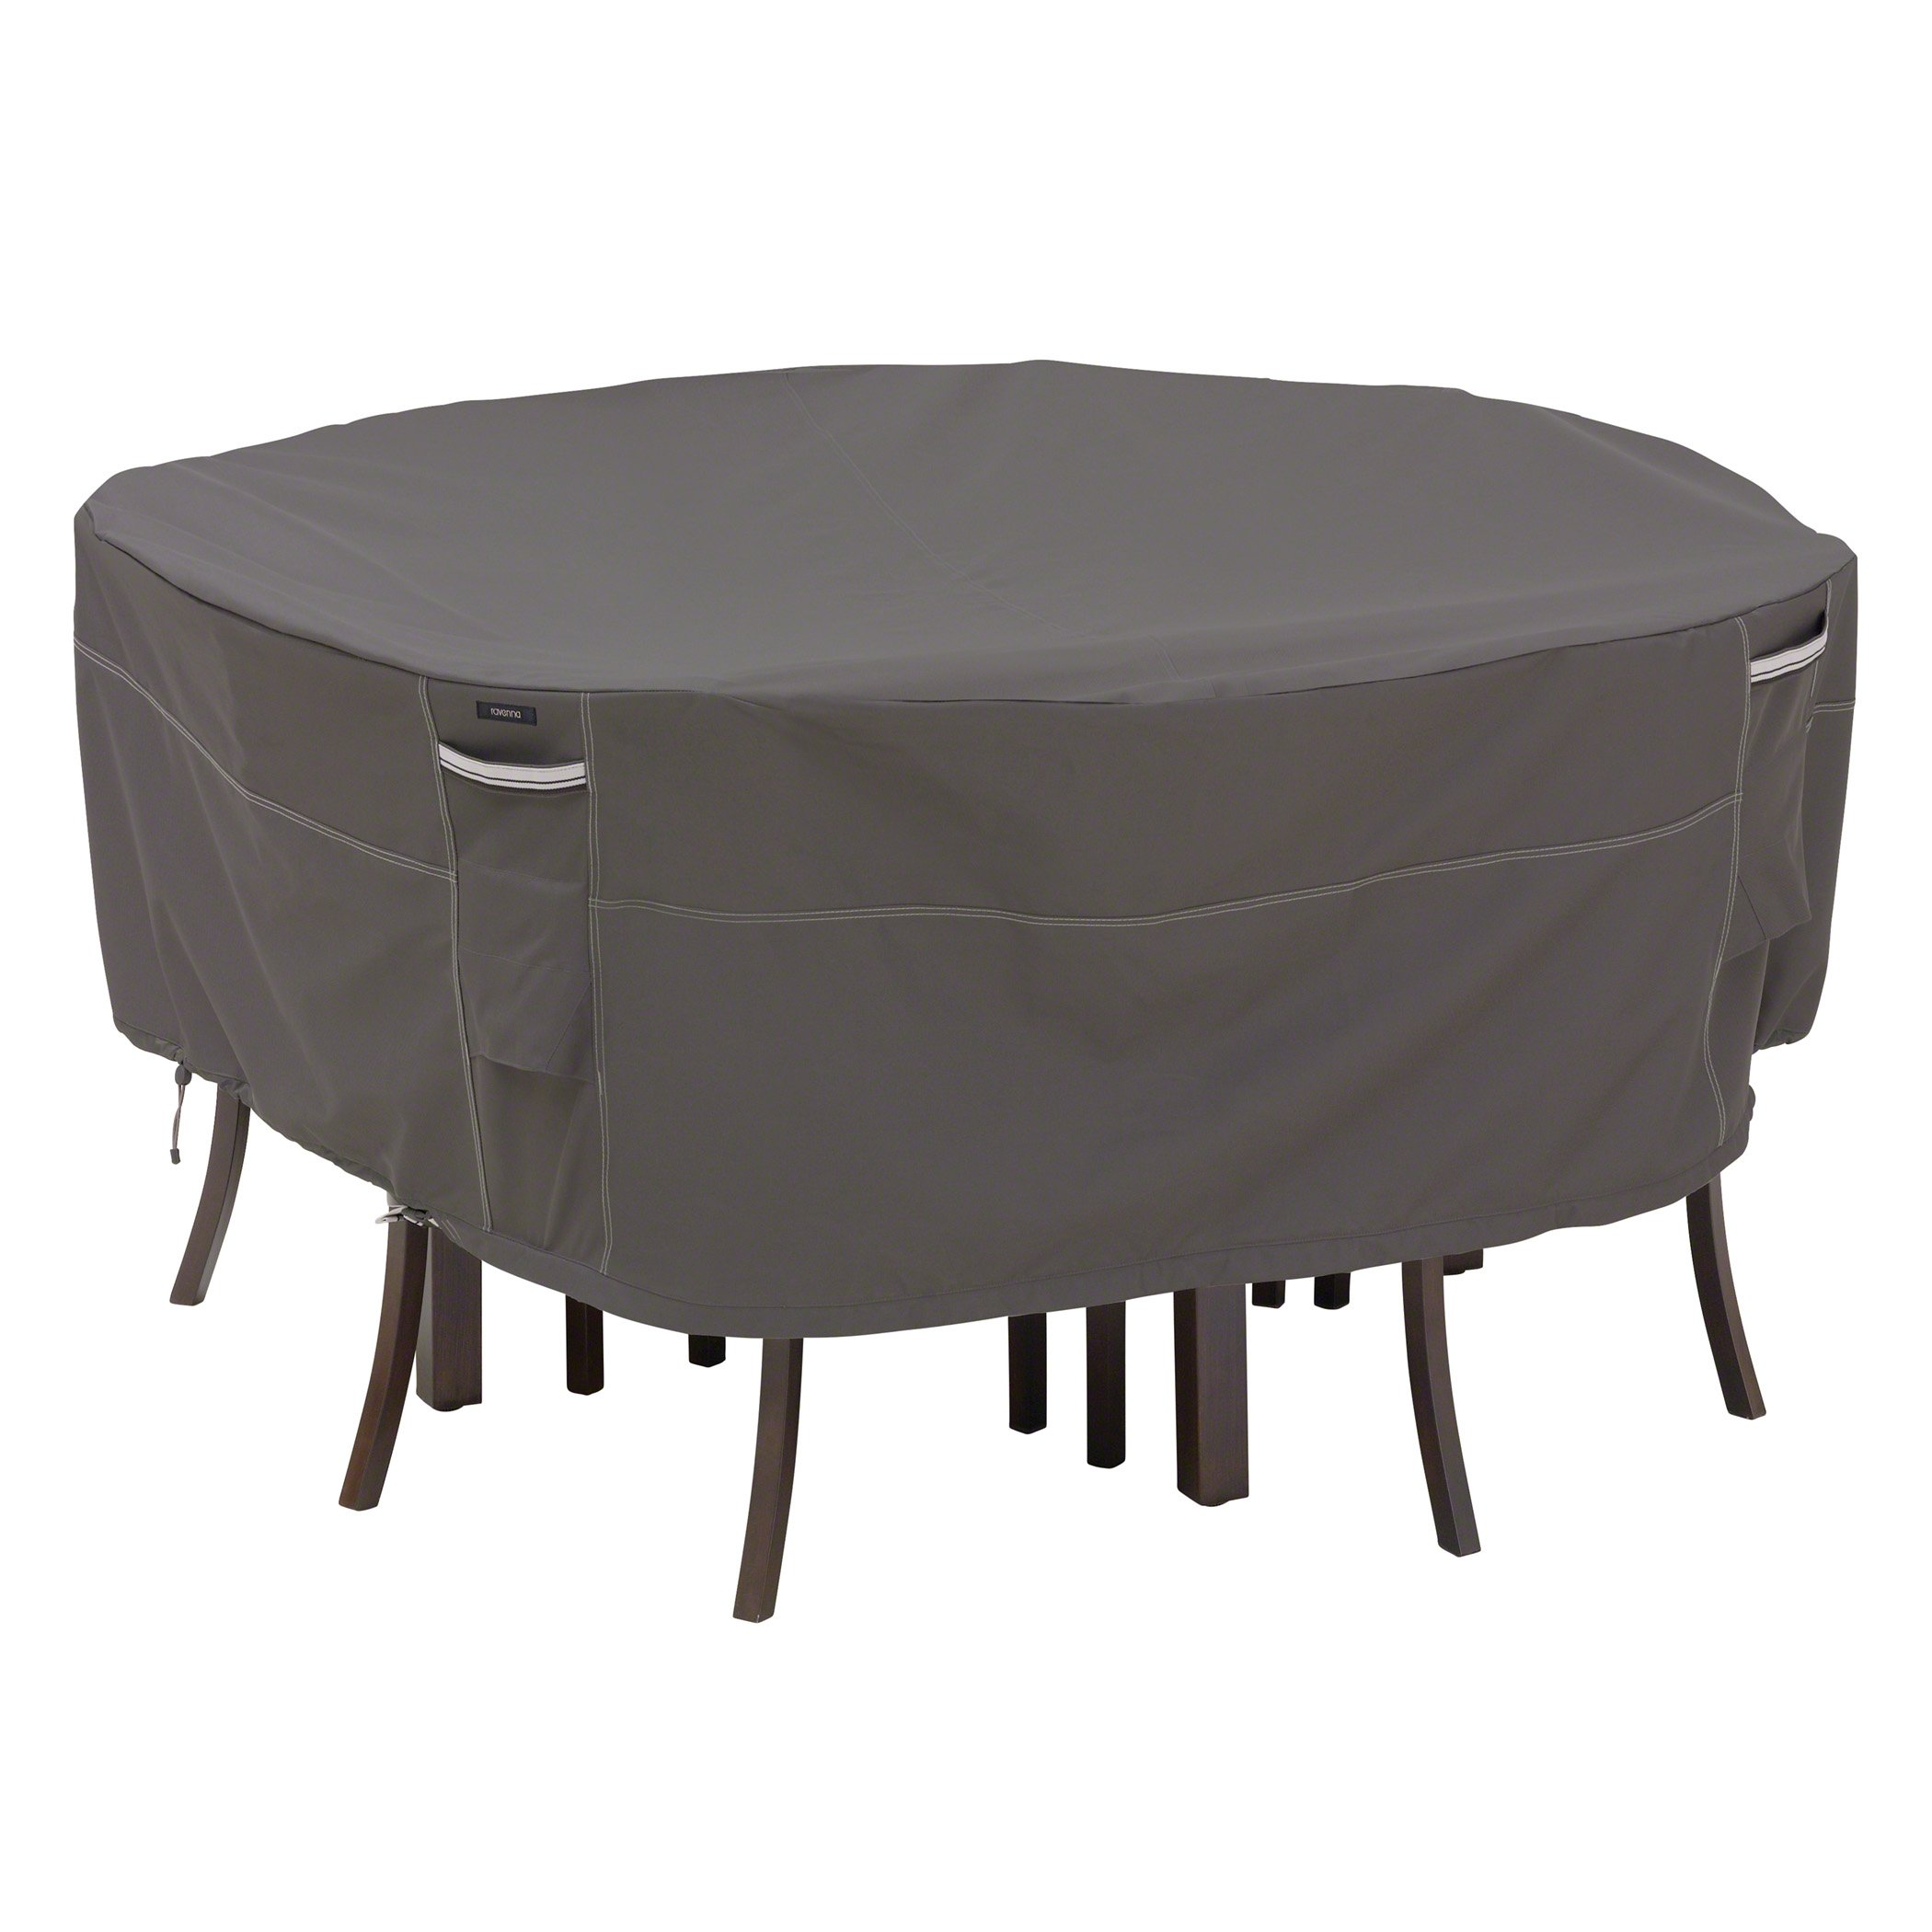 Classic Accessories 55-157-035101-Ec Ravenna Round Patio Table And Chair Cove.. 18